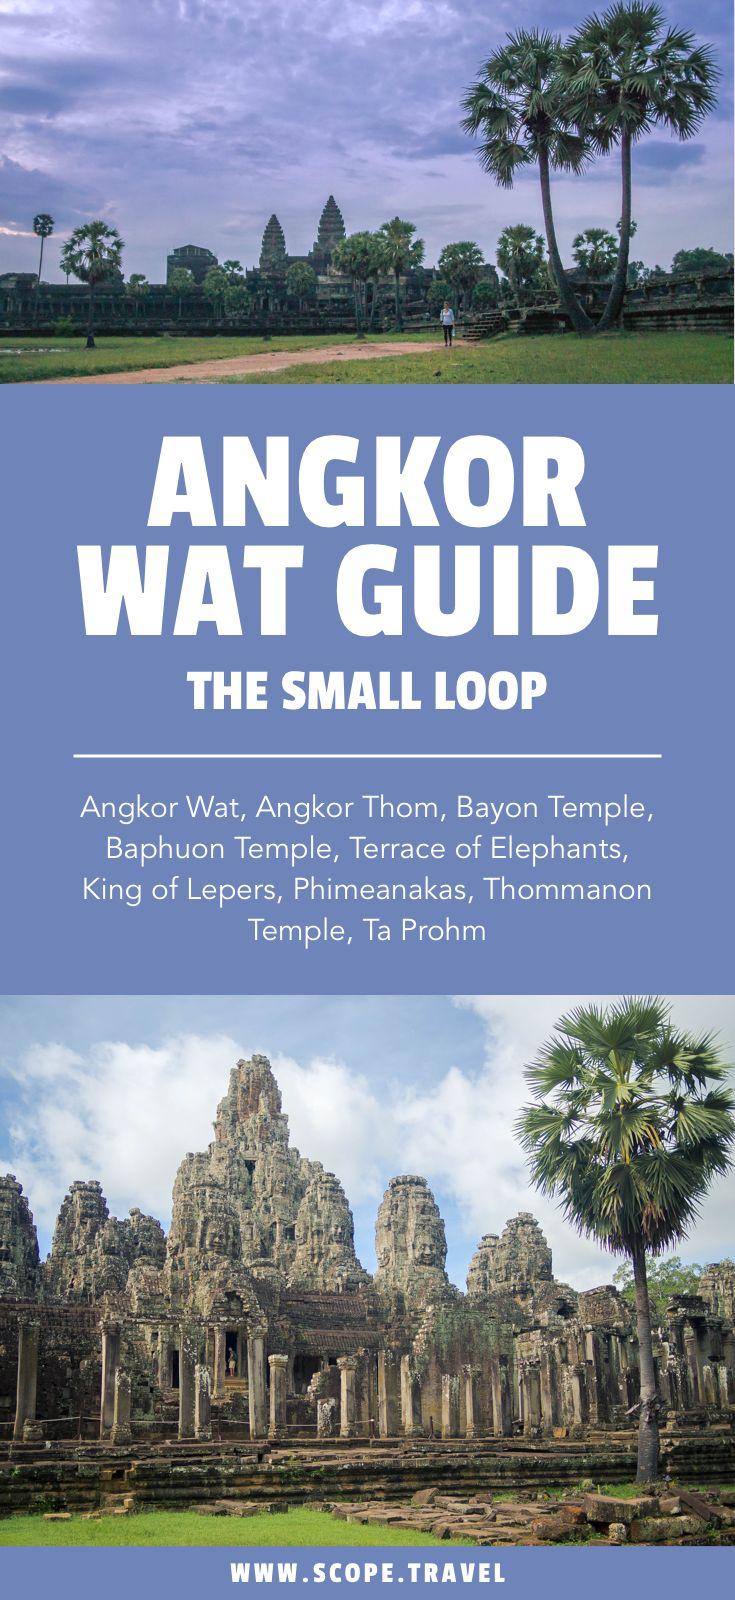 Explore the temples in Siem Reap. The smaller loop is requires less driving in between the various temples. Including Angkor Wat, Angkor Thom, Bayon Temple, Baphuon Temple, Terrace of Elephants, King of Lepers, Phimeanakas, Thommanon Temple, Ta Prohm.